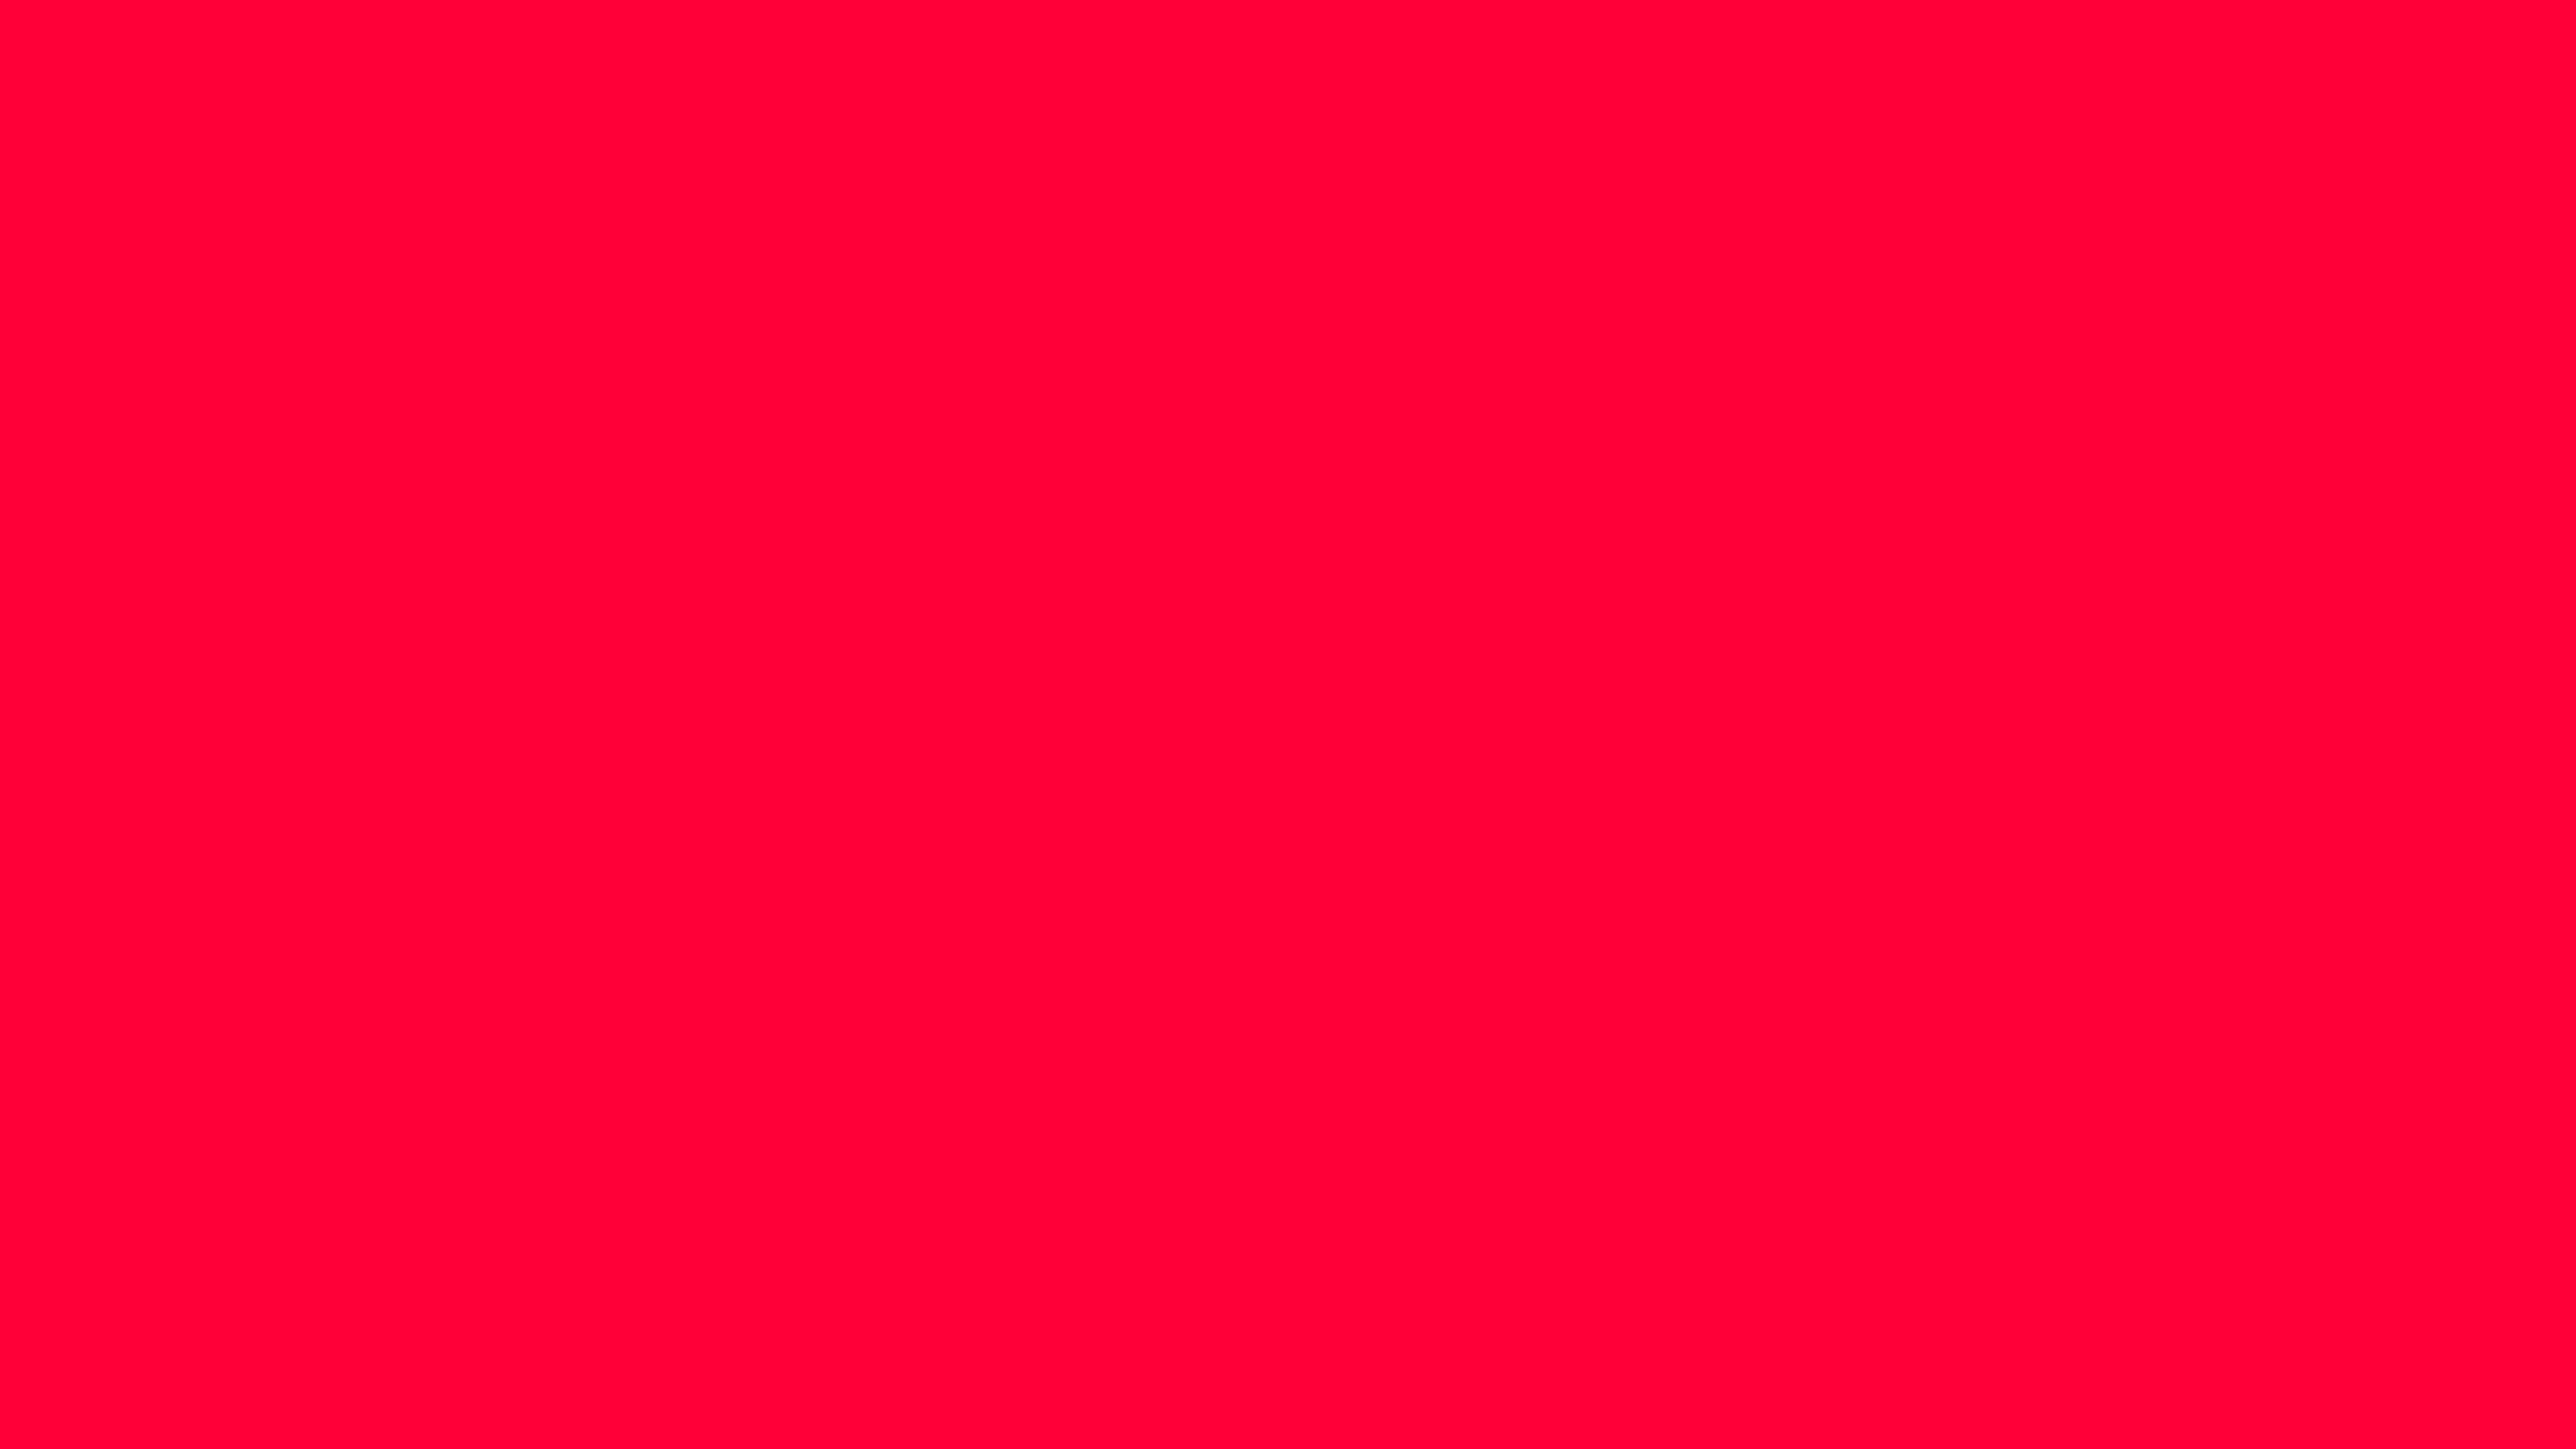 7680x4320 Carmine Red Solid Color Background